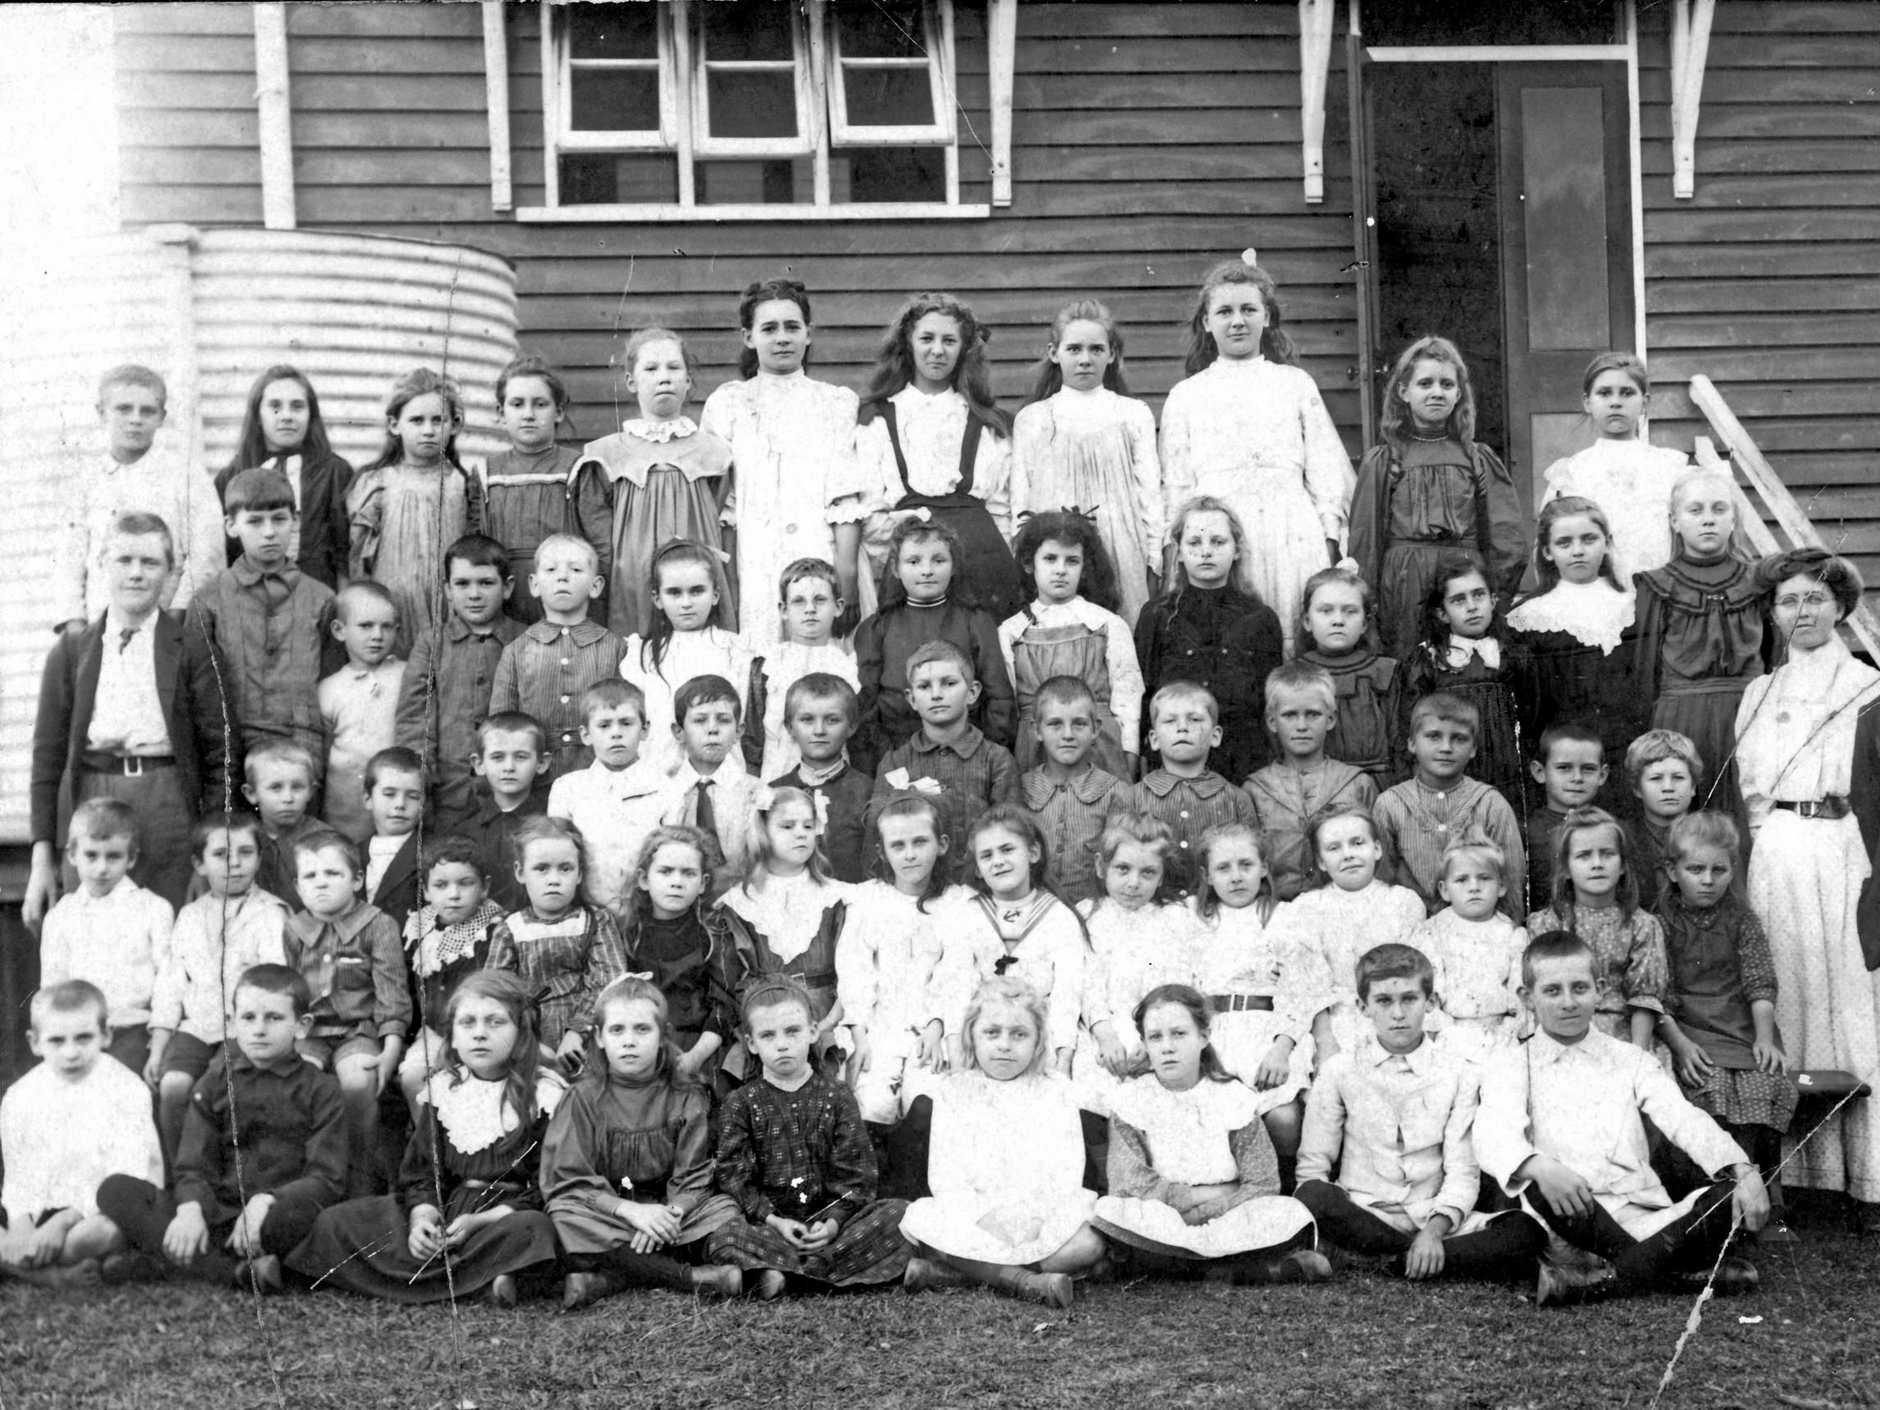 The students and teachers at Yandina State School in 1911.